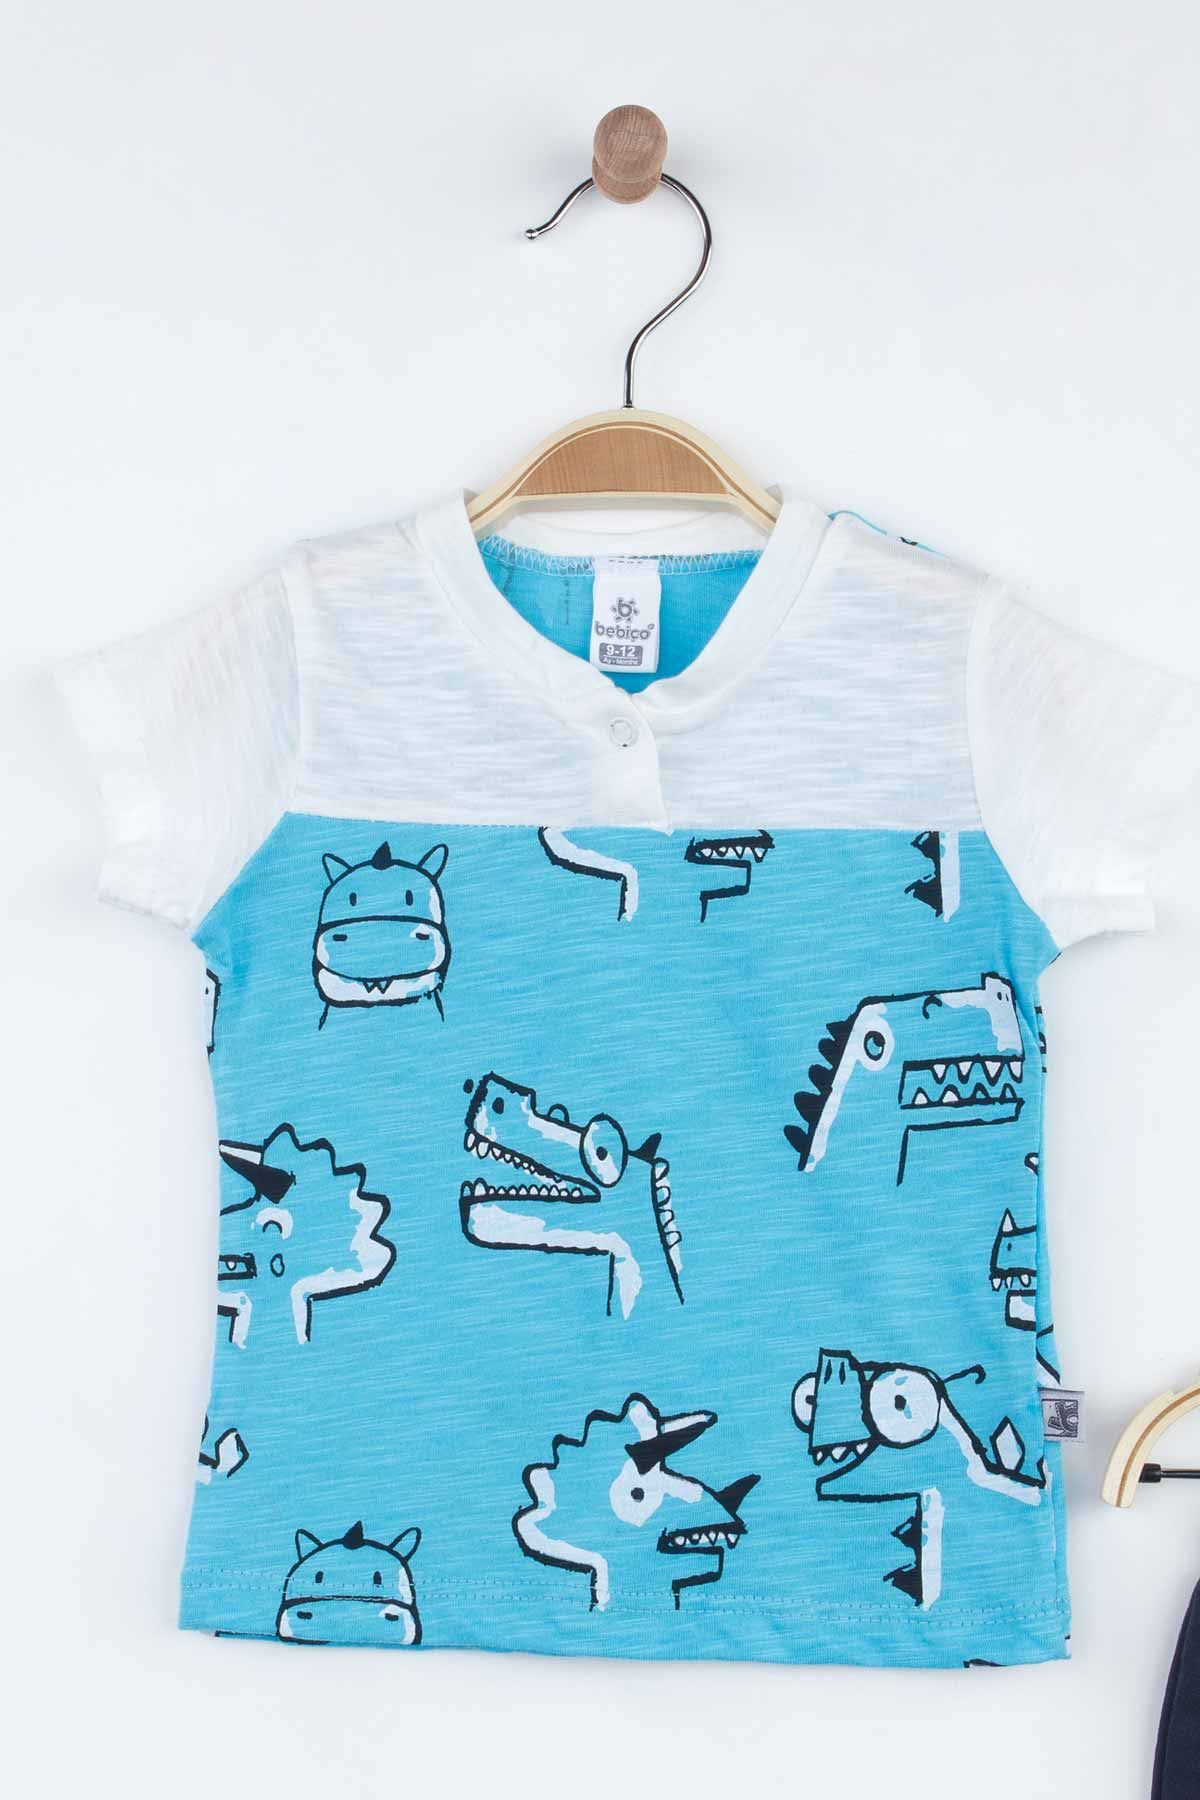 Blue Baby Boy Shorts Set Summer 2021 Fashion Babies Boys Outfit Cotton Casual Vacation Use Clothing Models